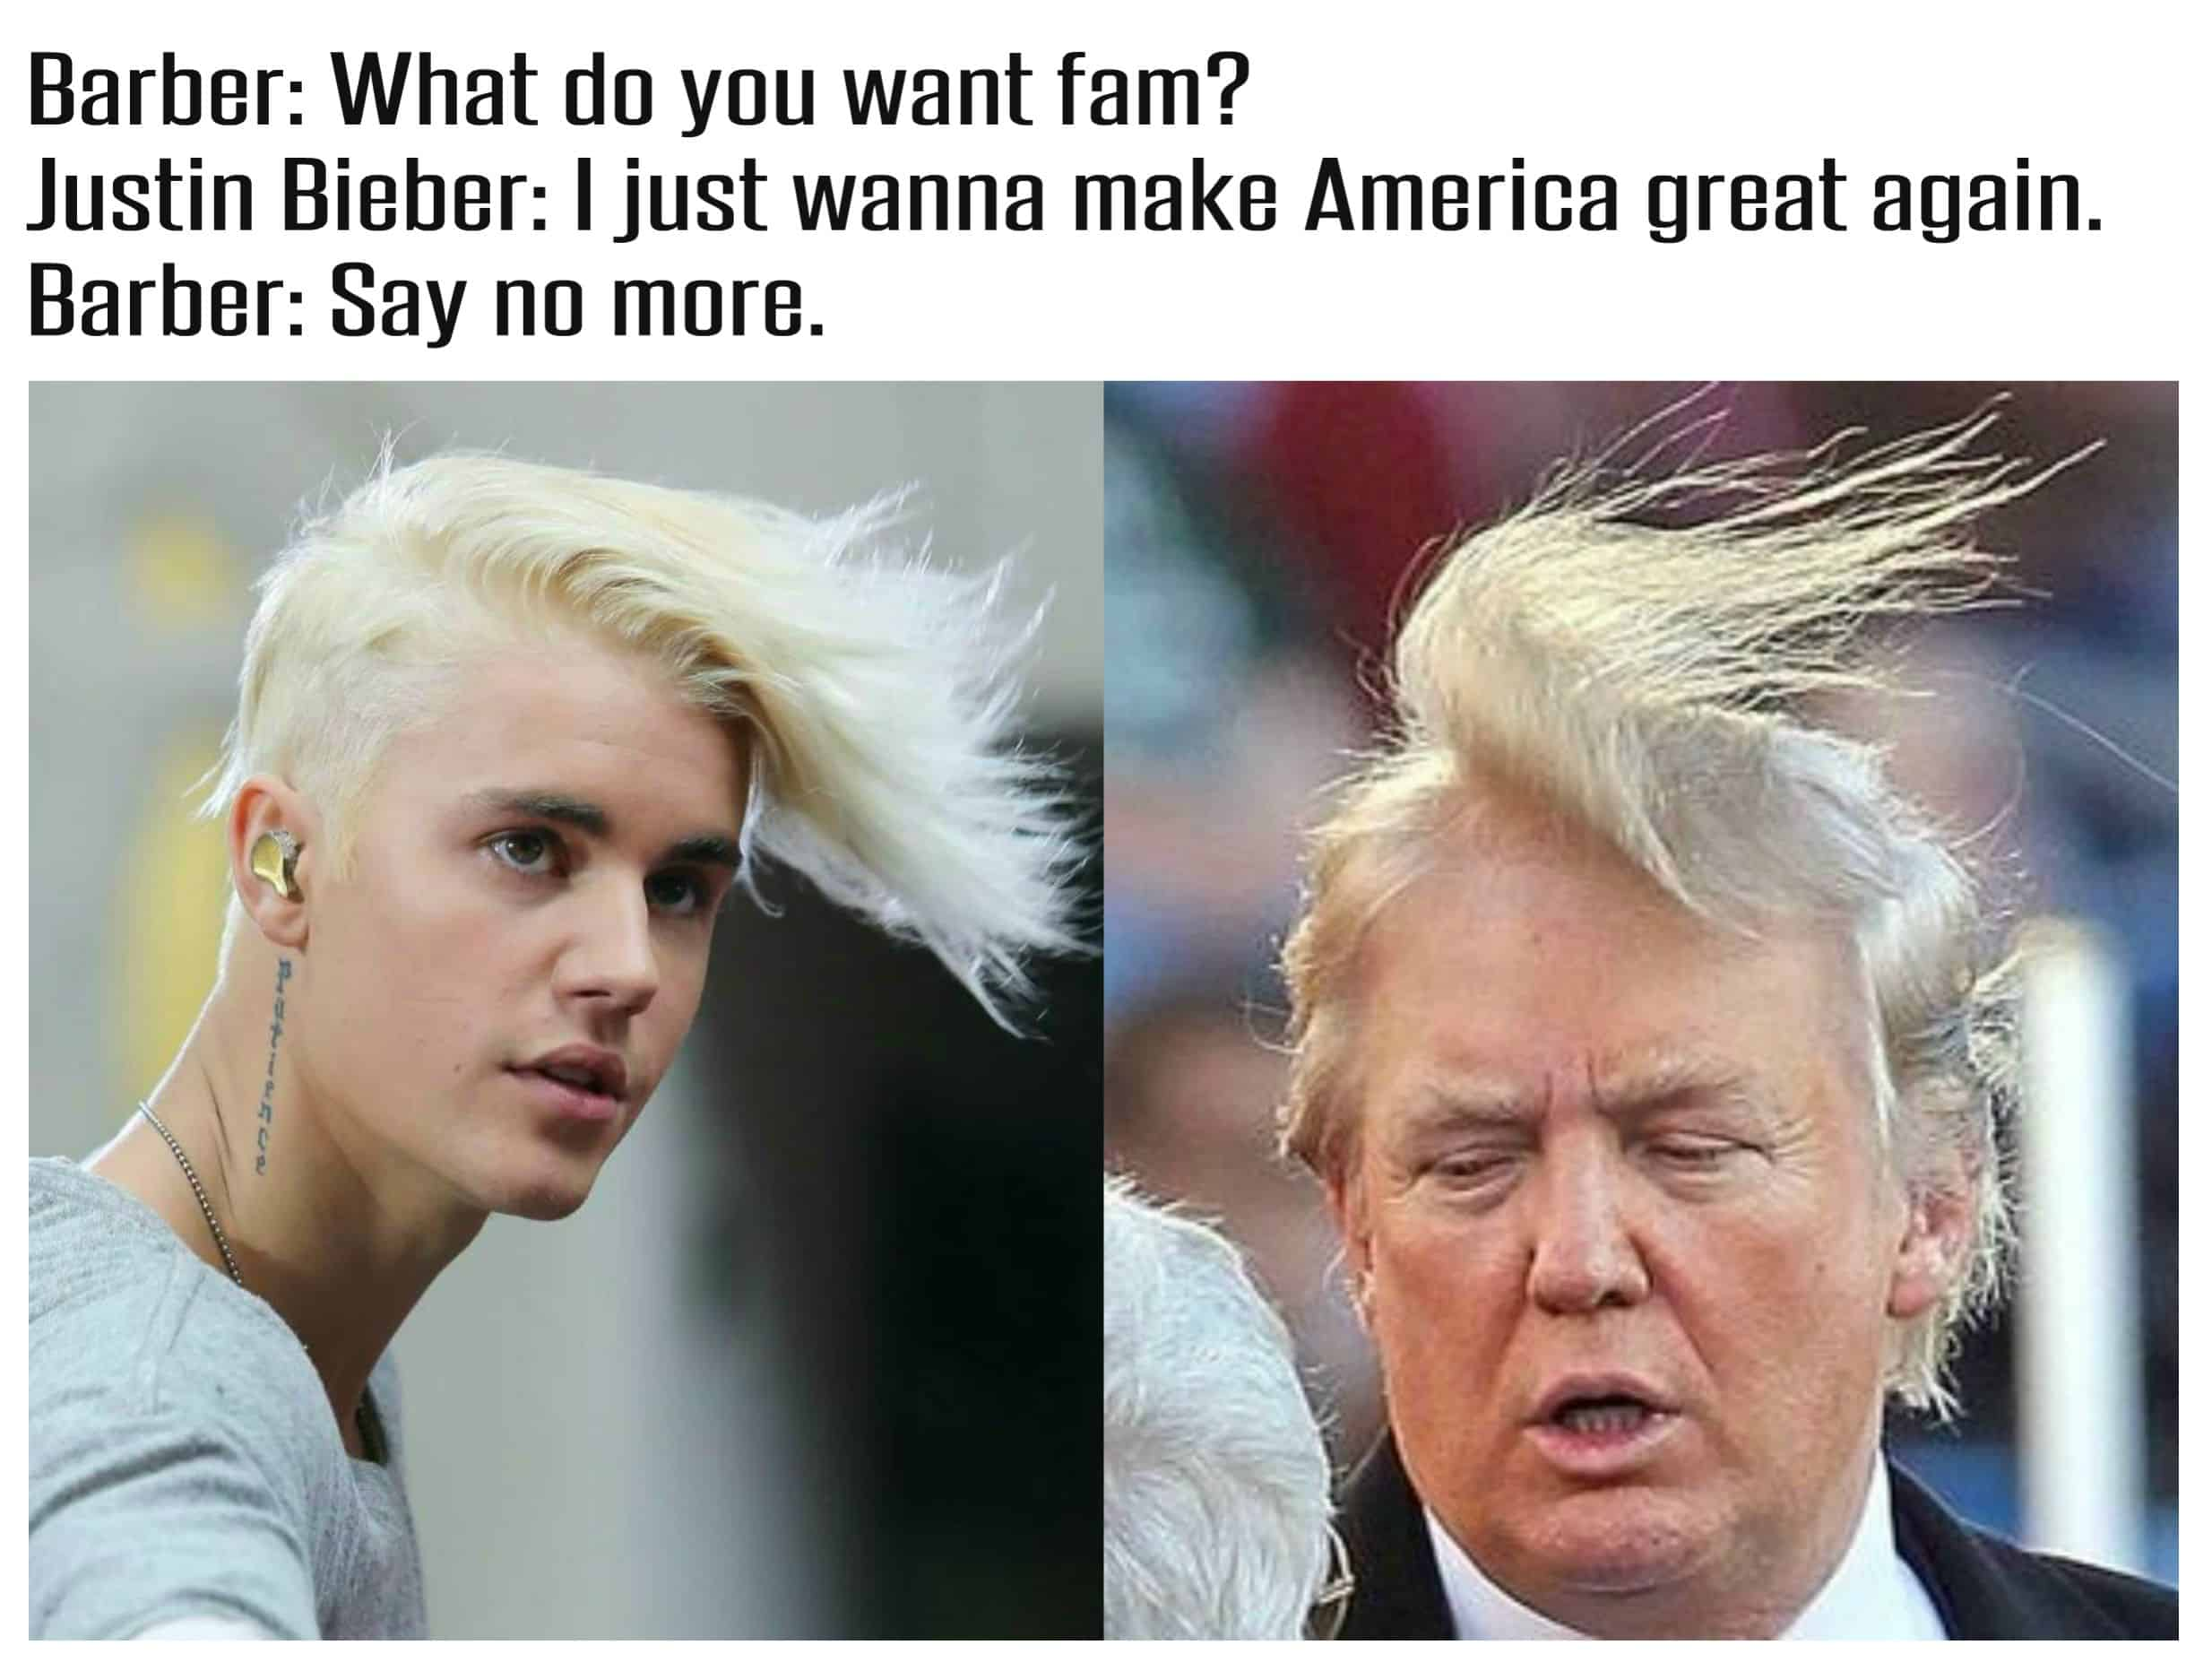 Groovy What Do You Want Fam Haircut Memes That Can Easily Make You Laugh Bad Haircut Barber Meme Bad Haircut Meme Generator bark post Bad Haircut Meme